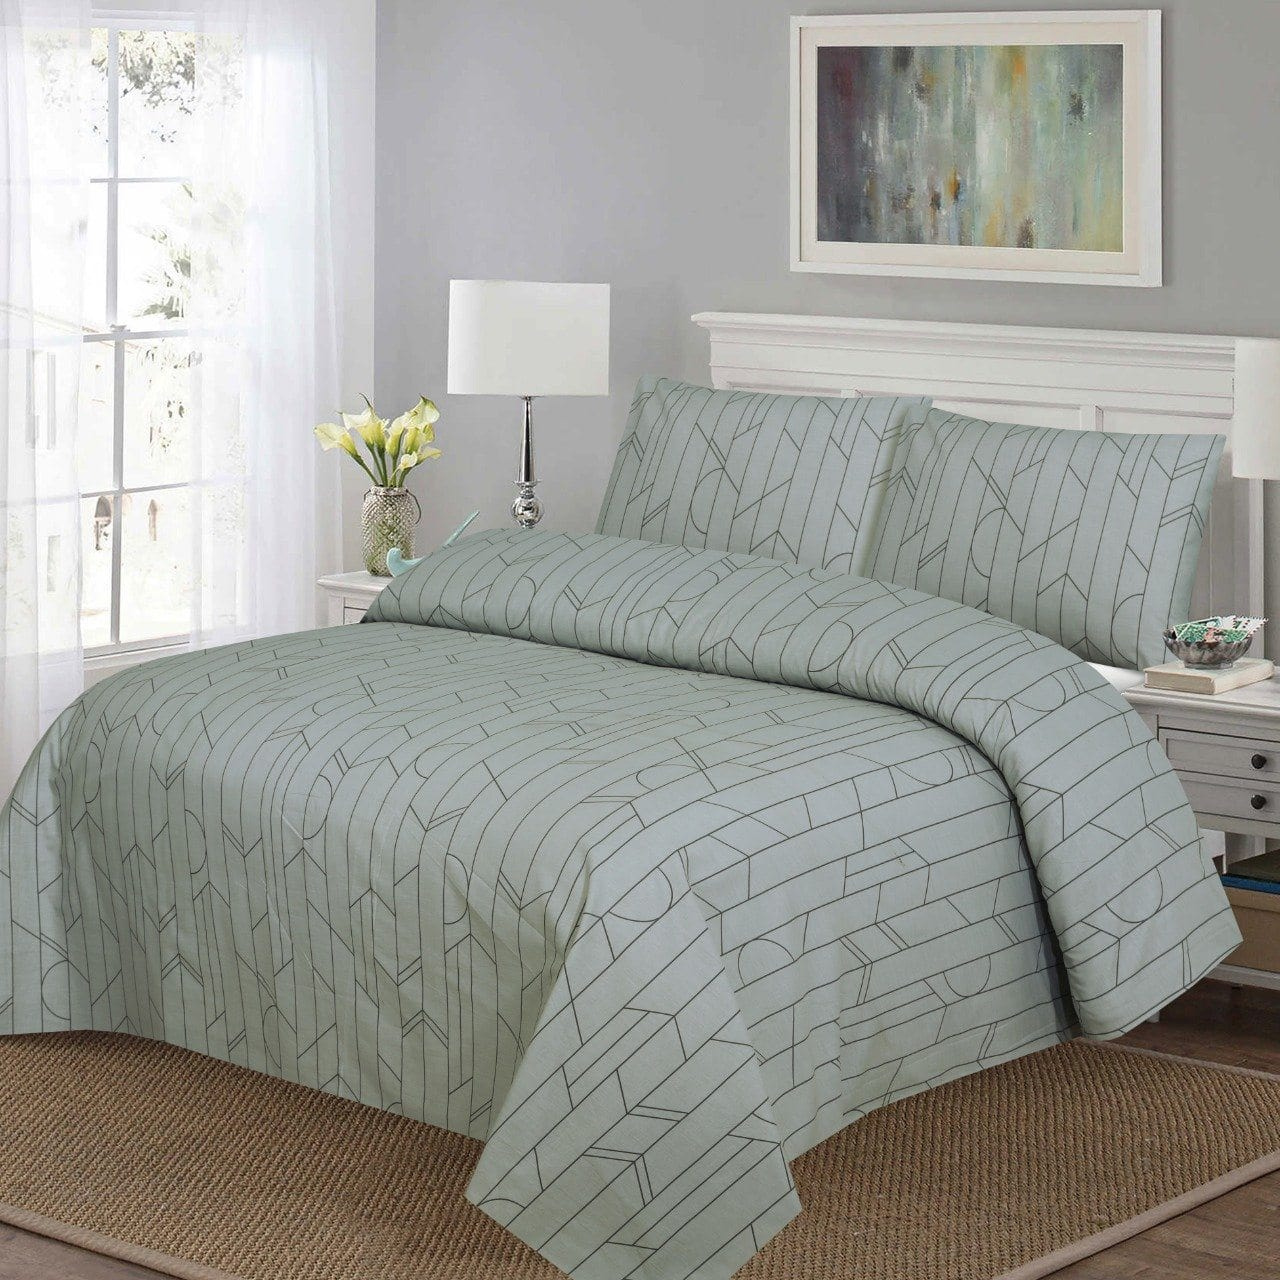 Grace D220-Cotton PC King Size Bedsheet with 2 Pillow Covers.